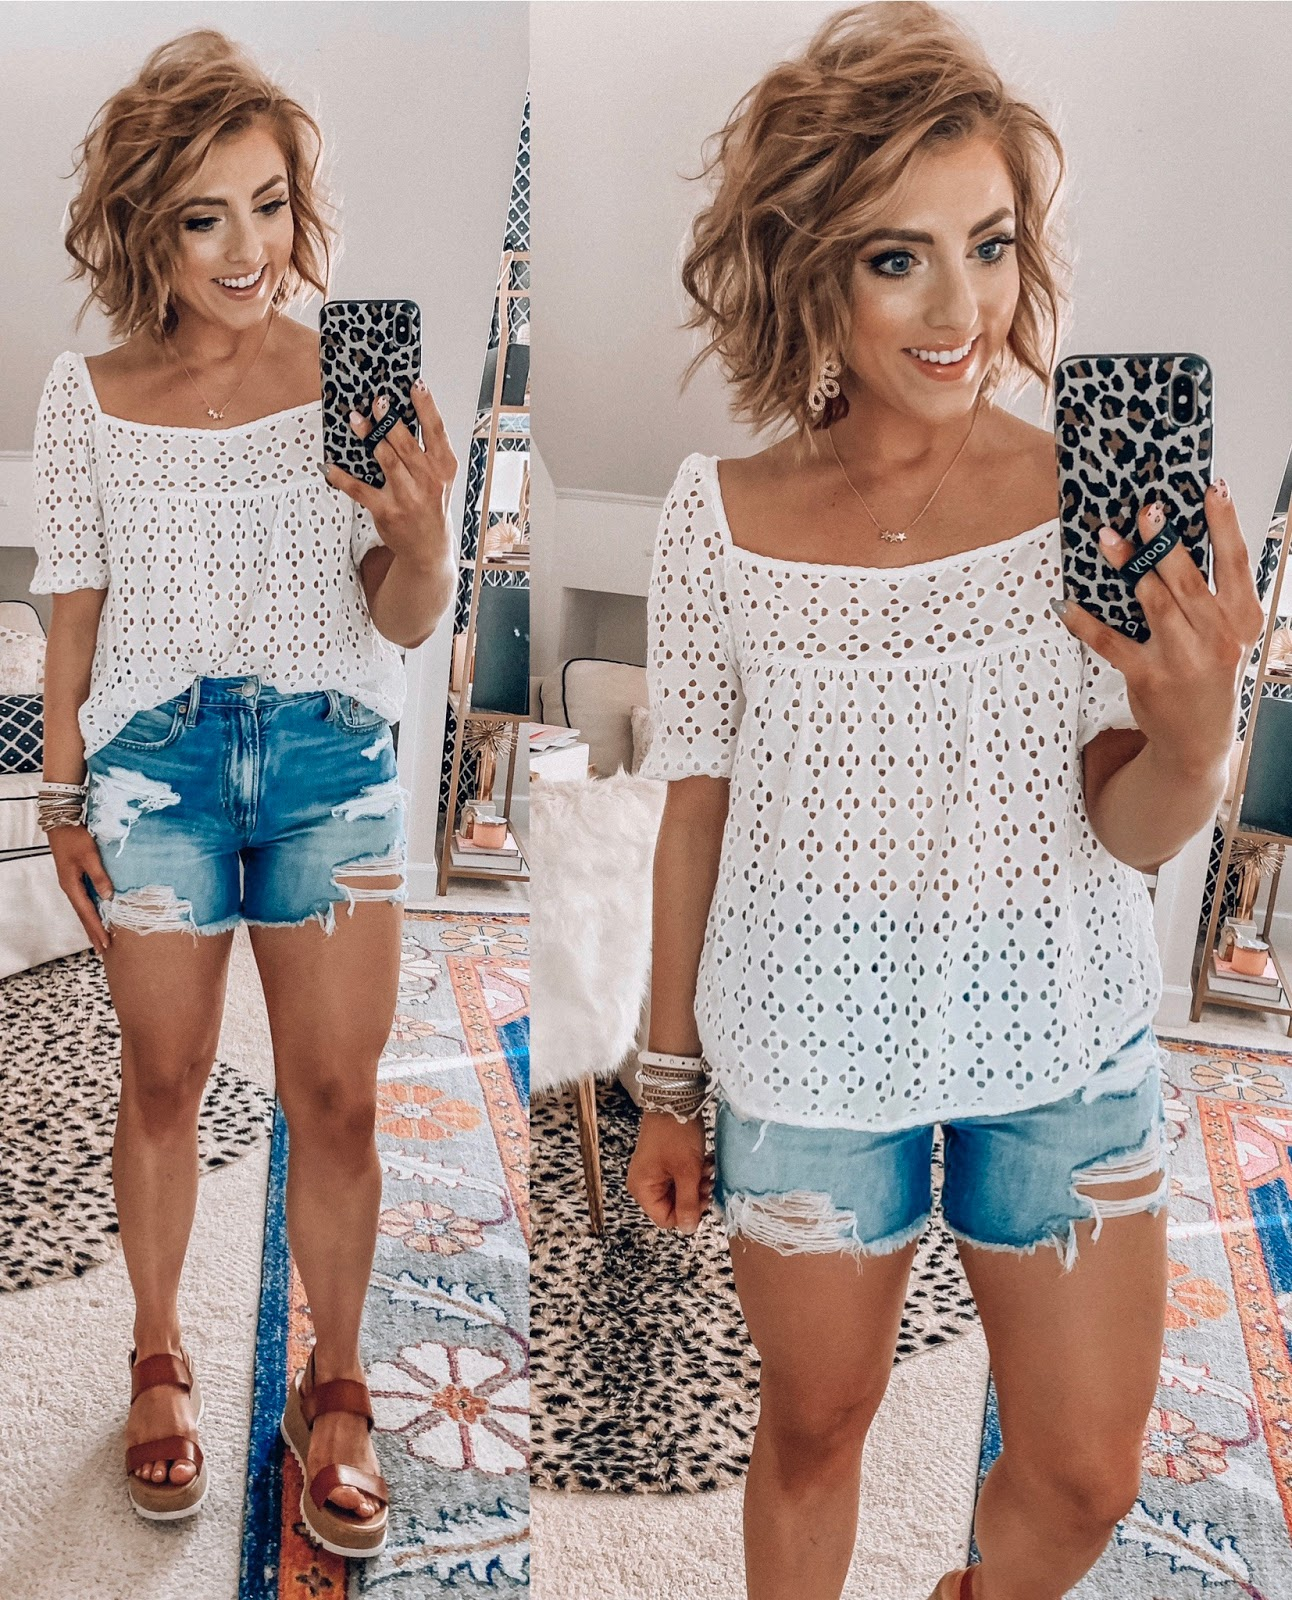 Spring American Eagle Finds - Something Delightful Blog #SpringStyle #AmericanEagle #AffordableFashion #AffordableDenim #PetiteStyle #Eyelet